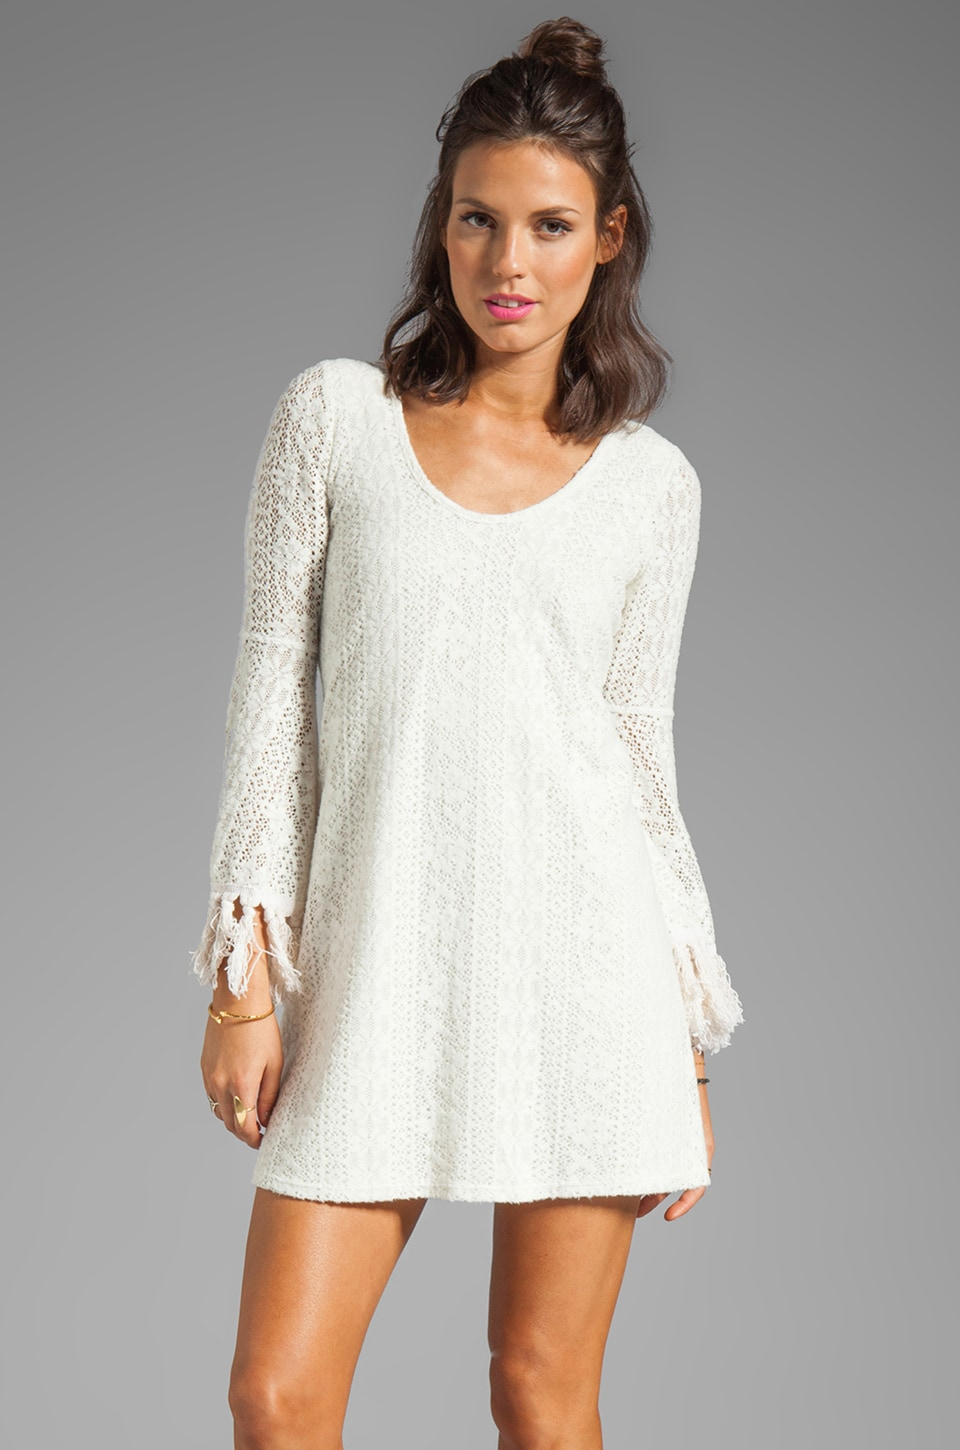 VAVA by Joy Han Chelsea Bell Sleeve Dress in White